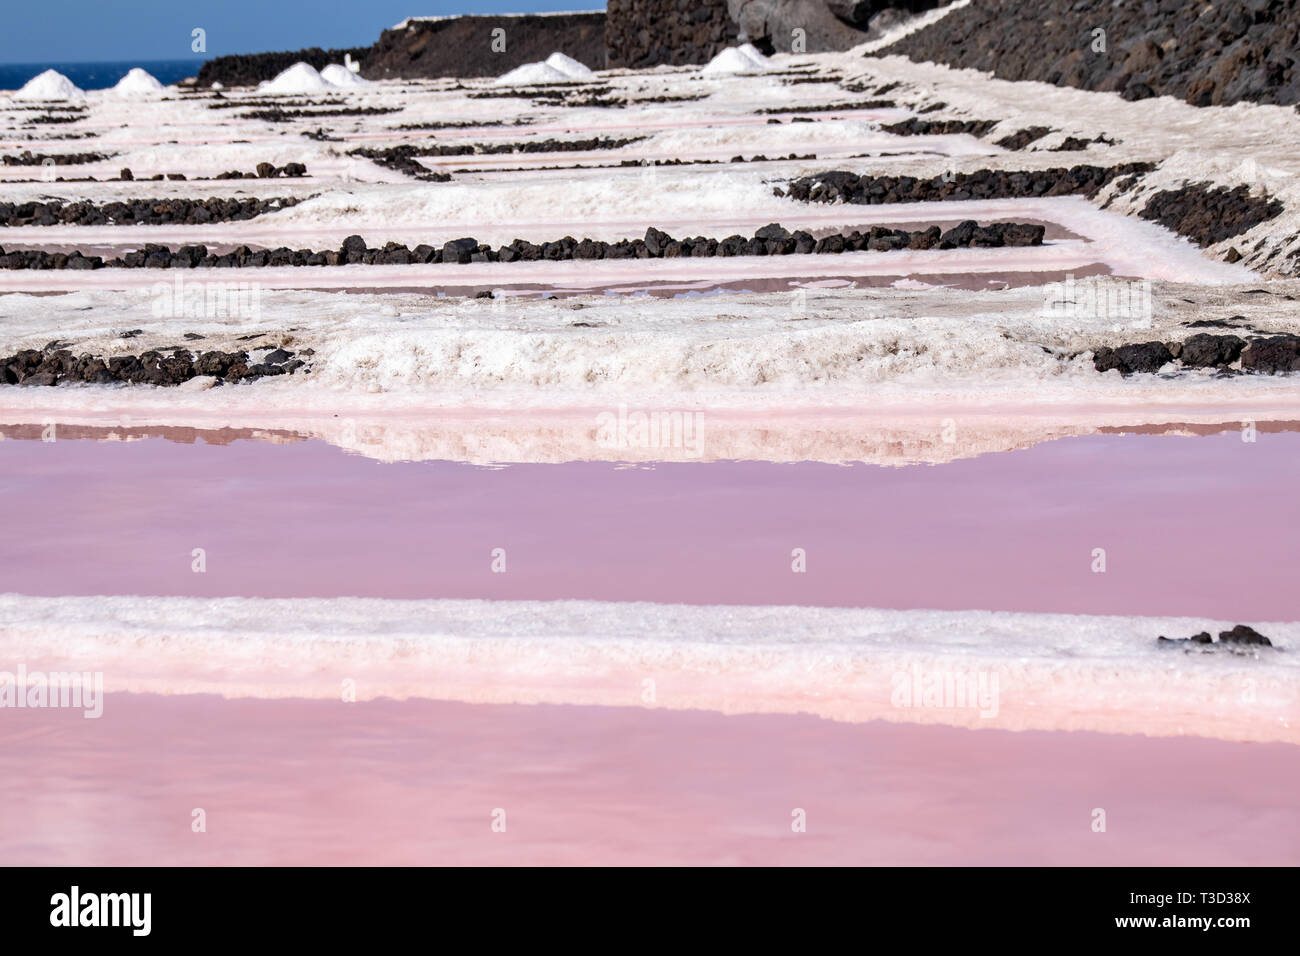 Reflections of salt evaportations in the pink colors of saline water during the production process in the salt fields of Fuencaliente, La Palma Island Stock Photo